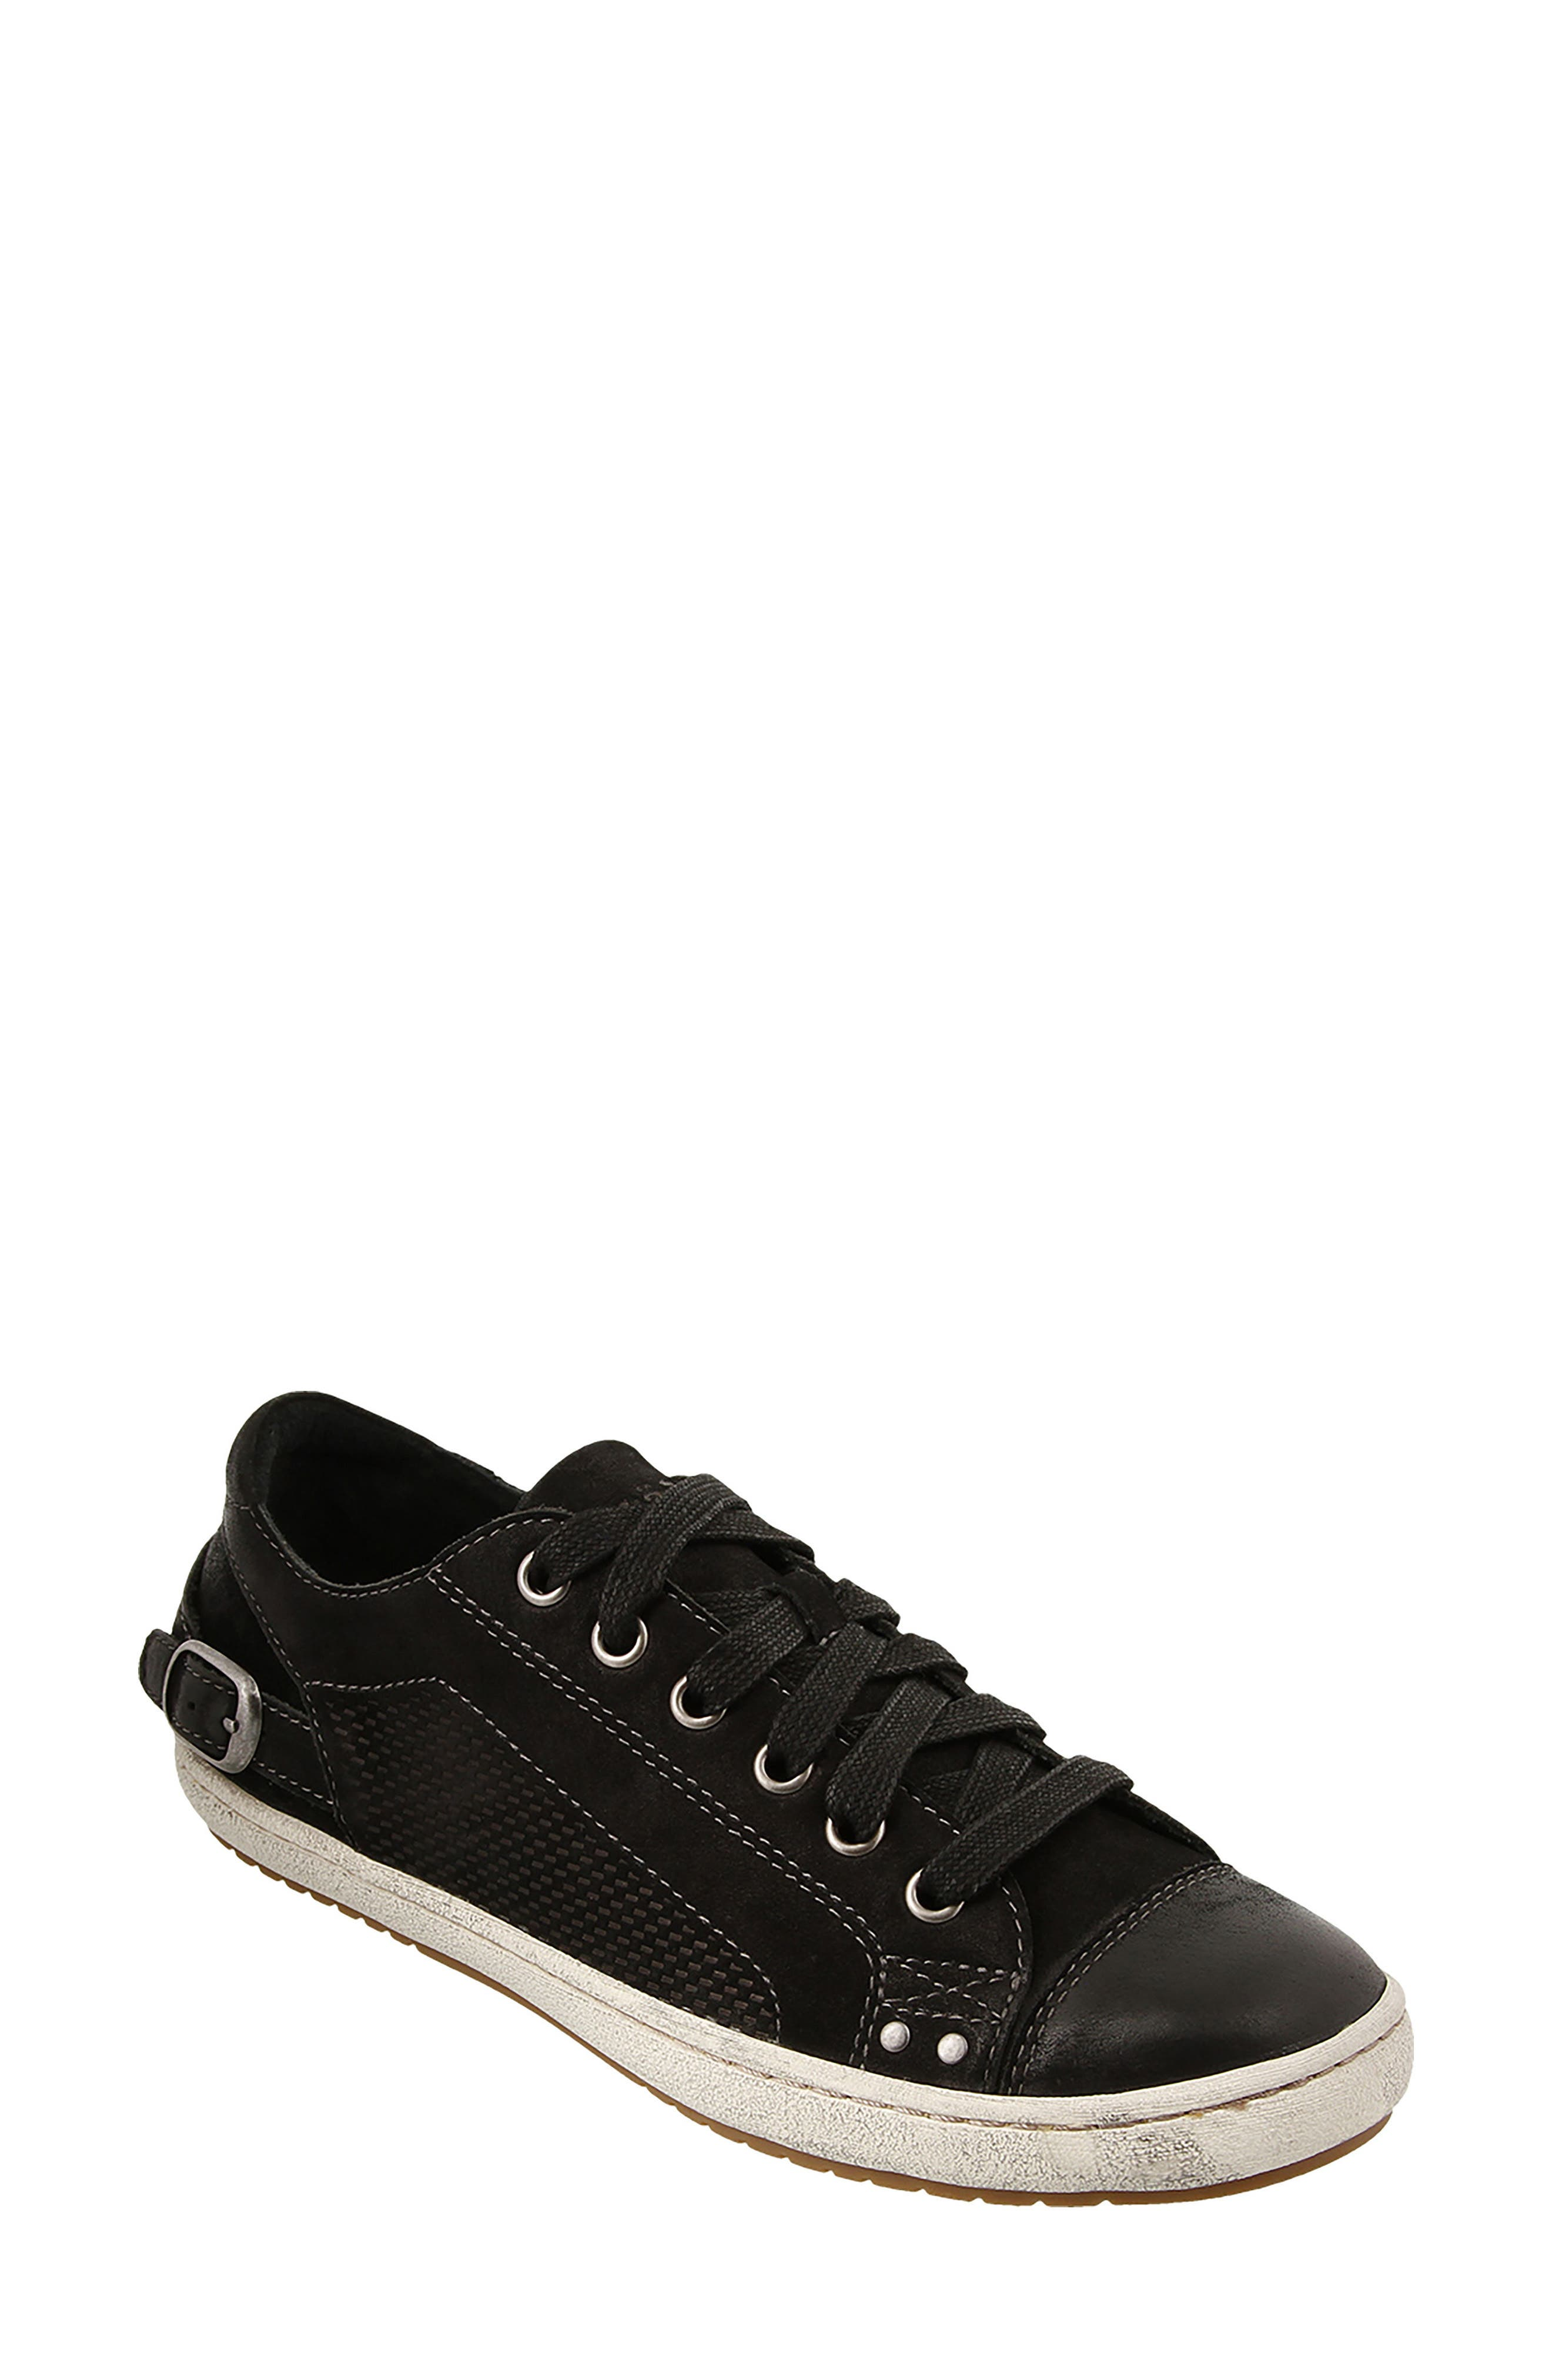 Capitol Sneaker,                         Main,                         color, Black Leather